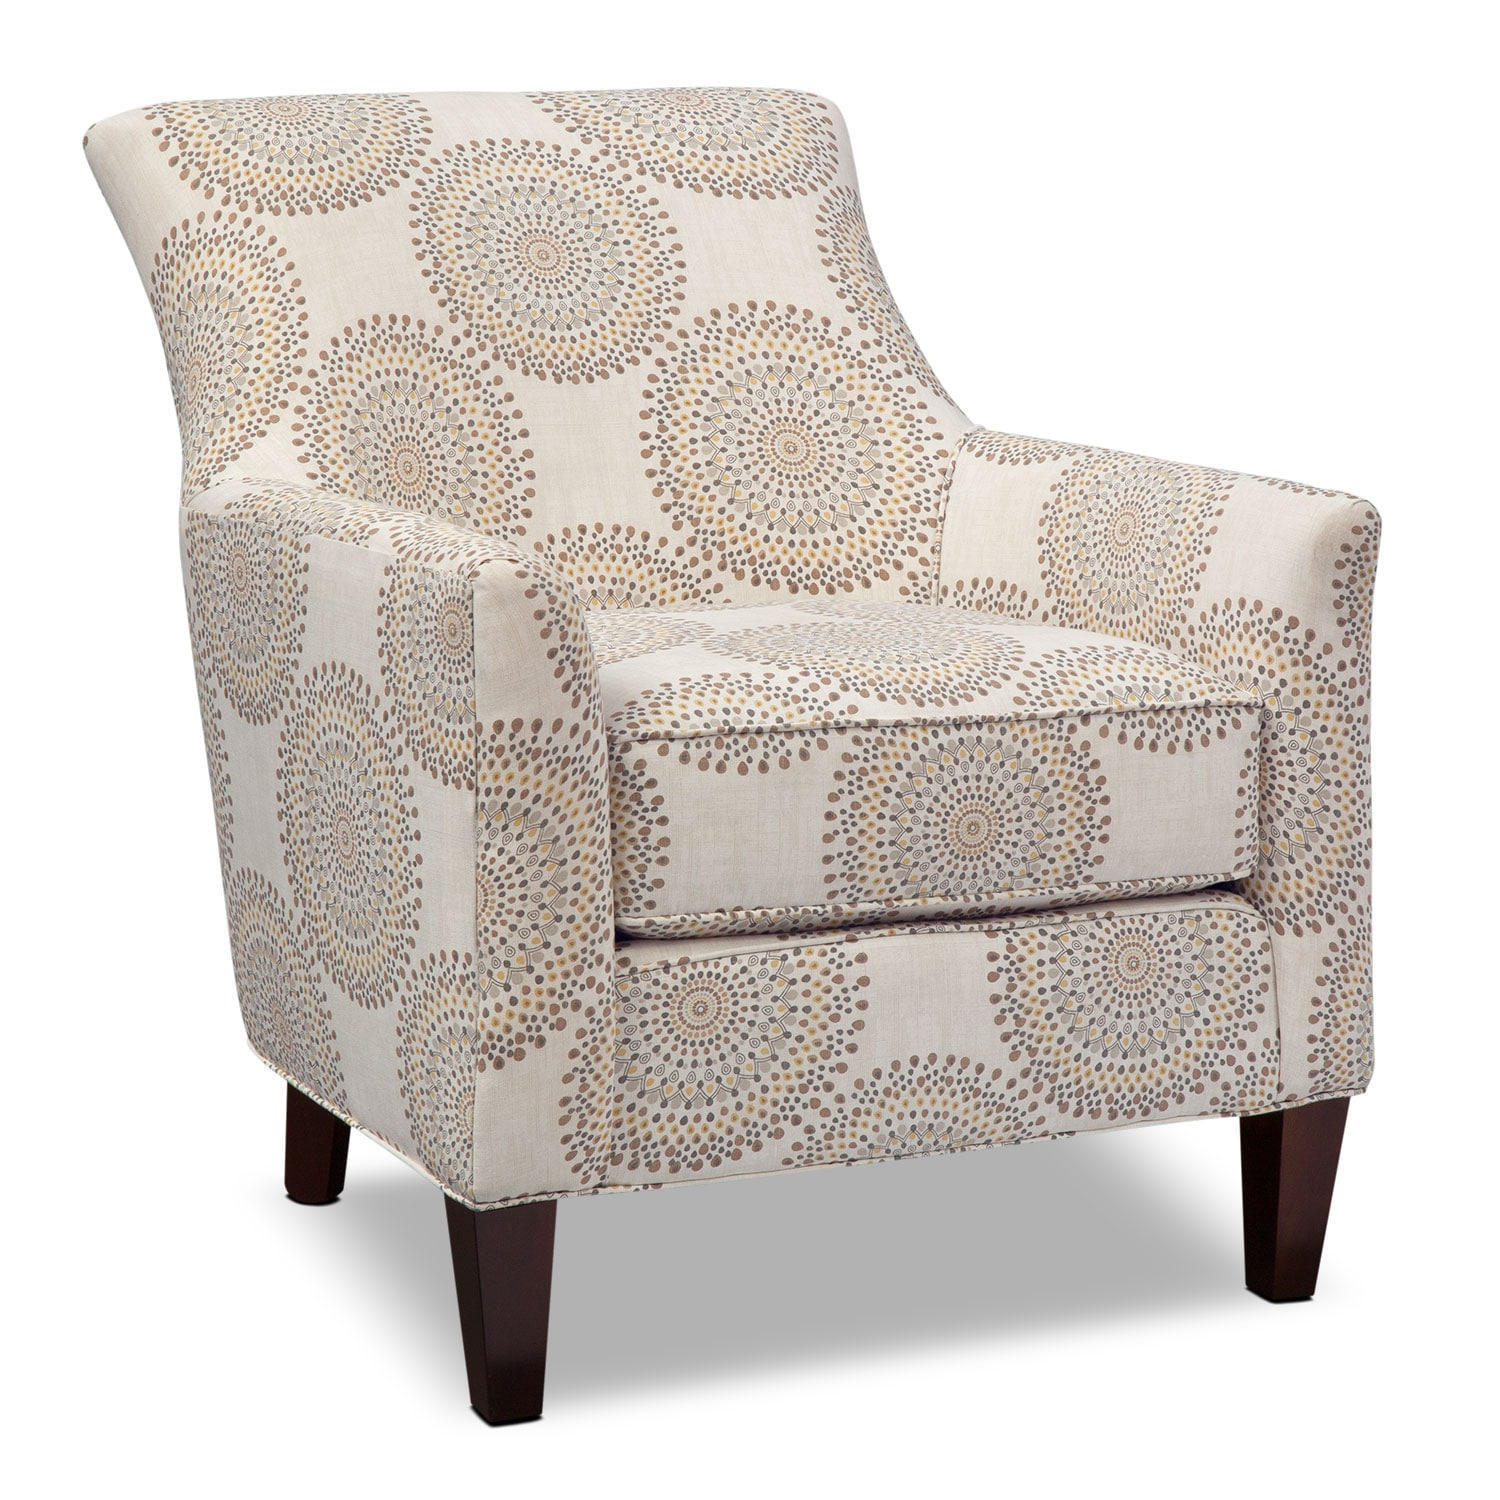 Rachel Carousel Accent Chair - Sand